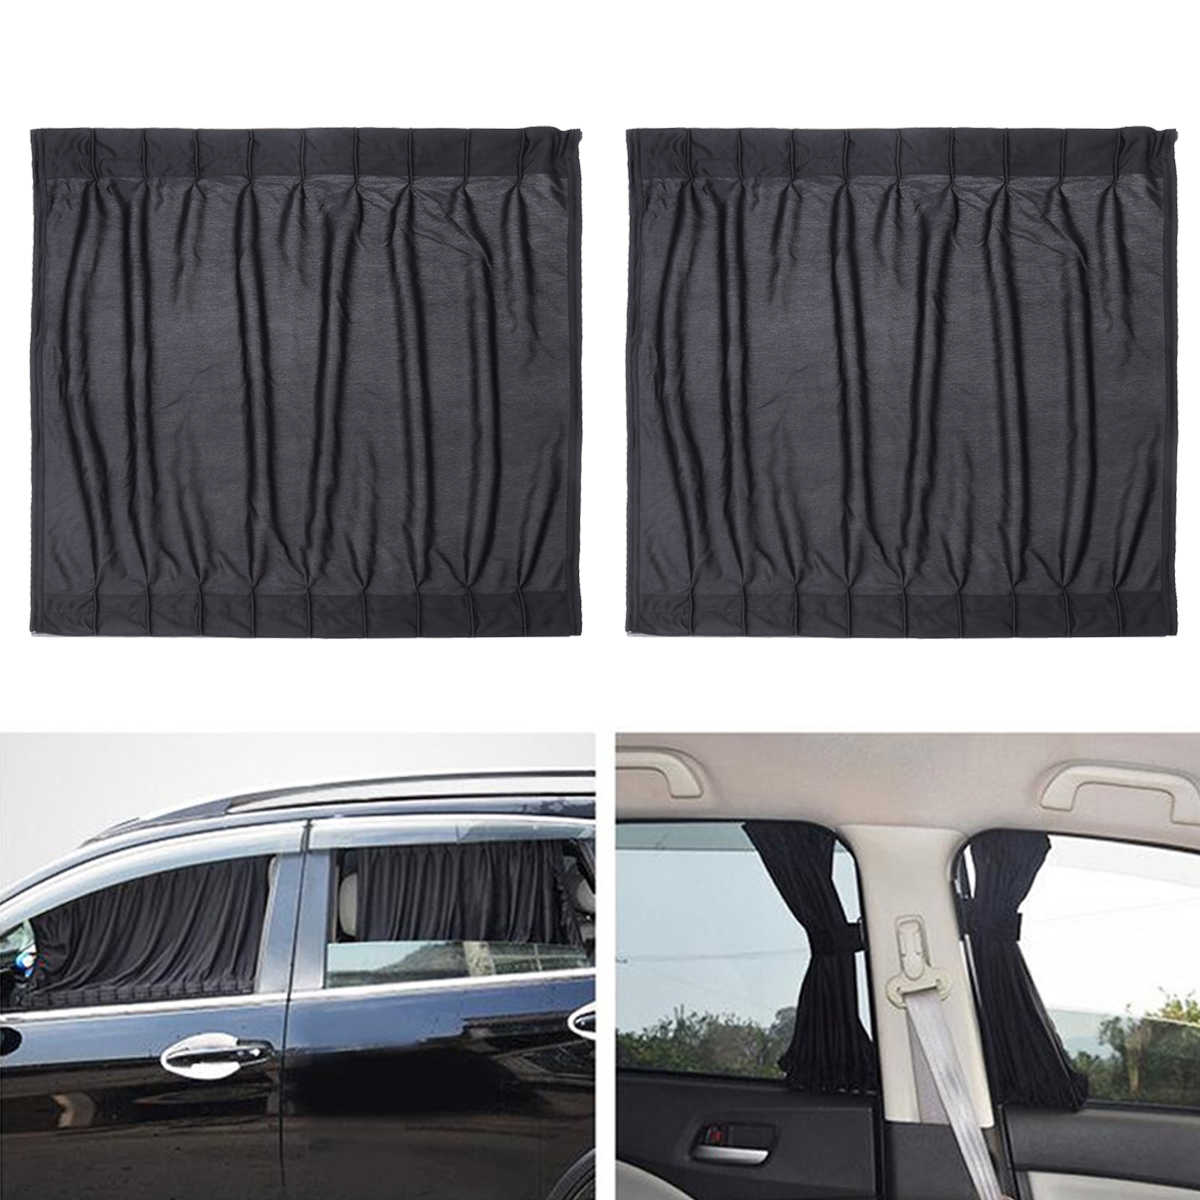 2pcs Janela Lateral Do Carro Cortina Carro Janela Escudo Deslizamento Mesh Cortina de Calor Anti Sun UV Protector Tampa Do Carro Cortinas sombrinha Coche